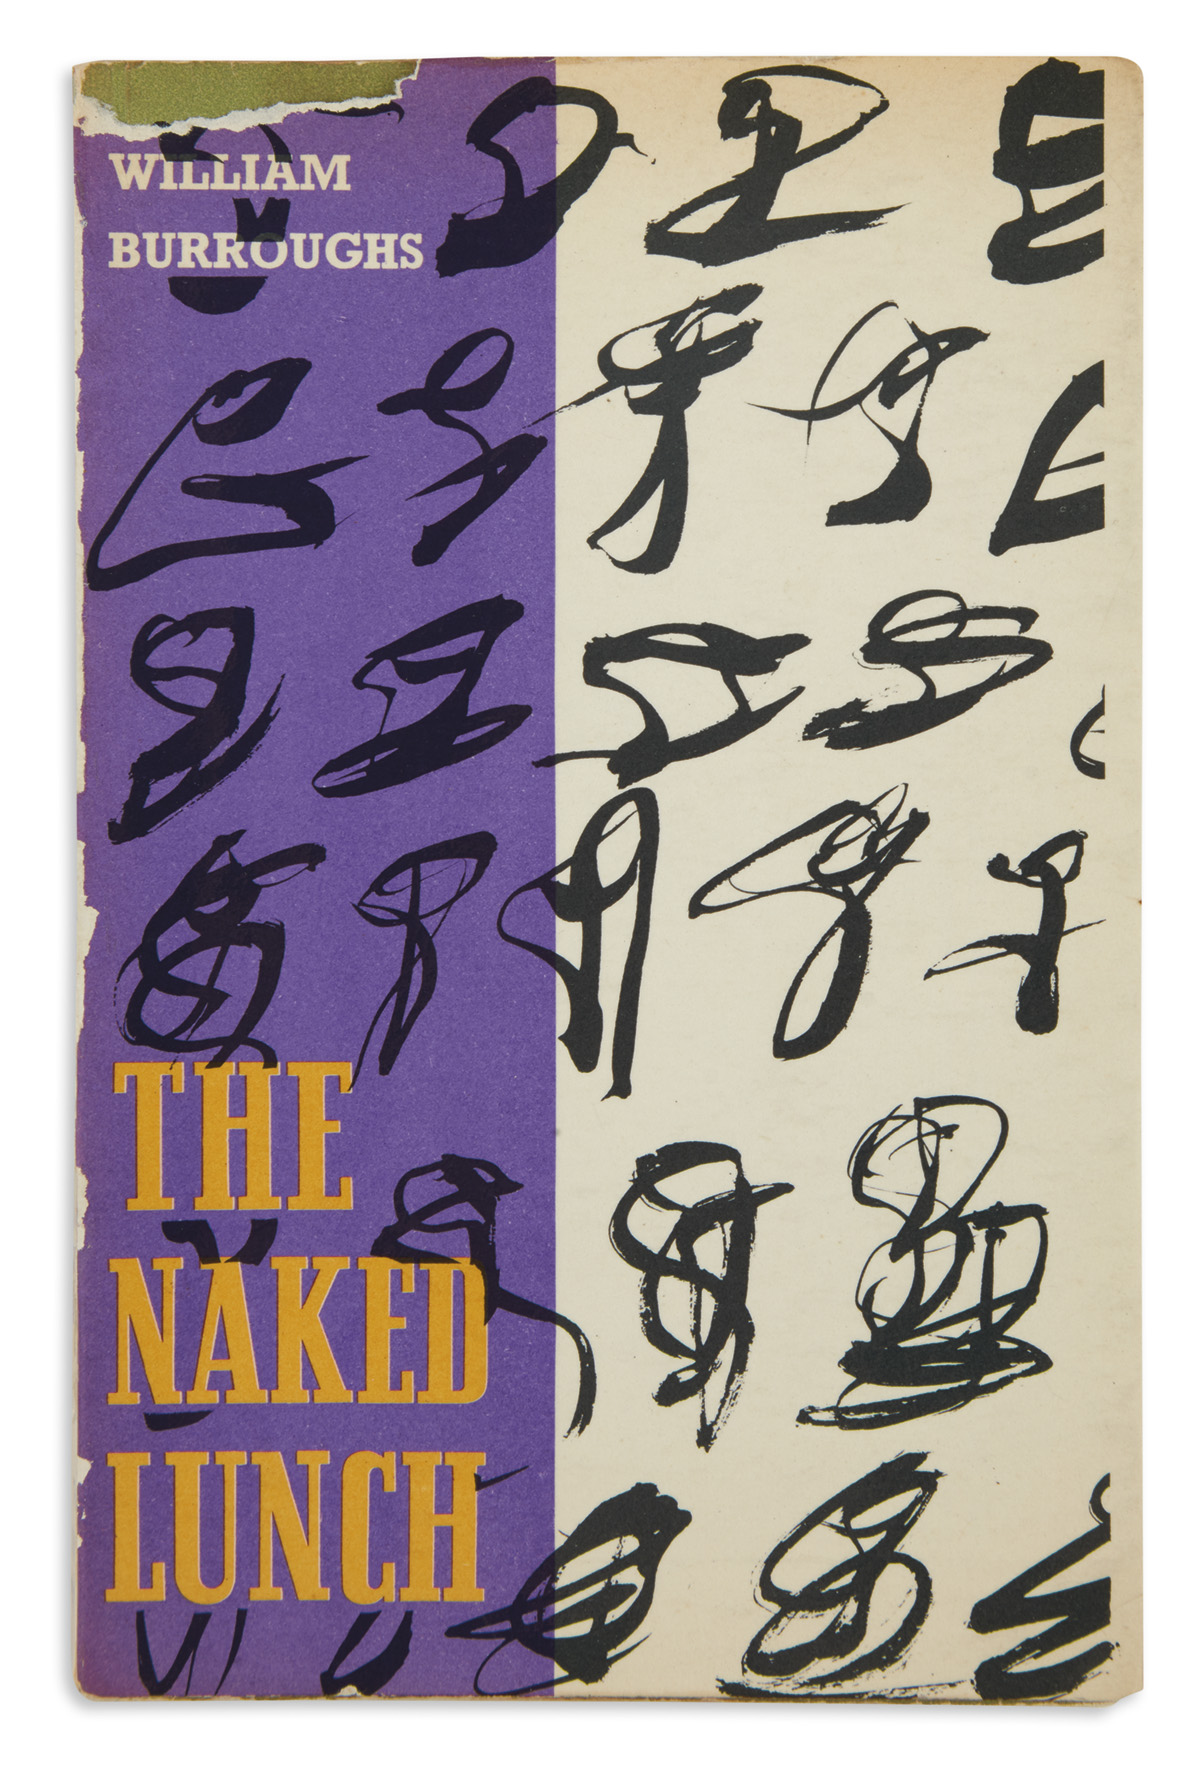 BURROUGHS, WILLIAM S. The Naked Lunch.